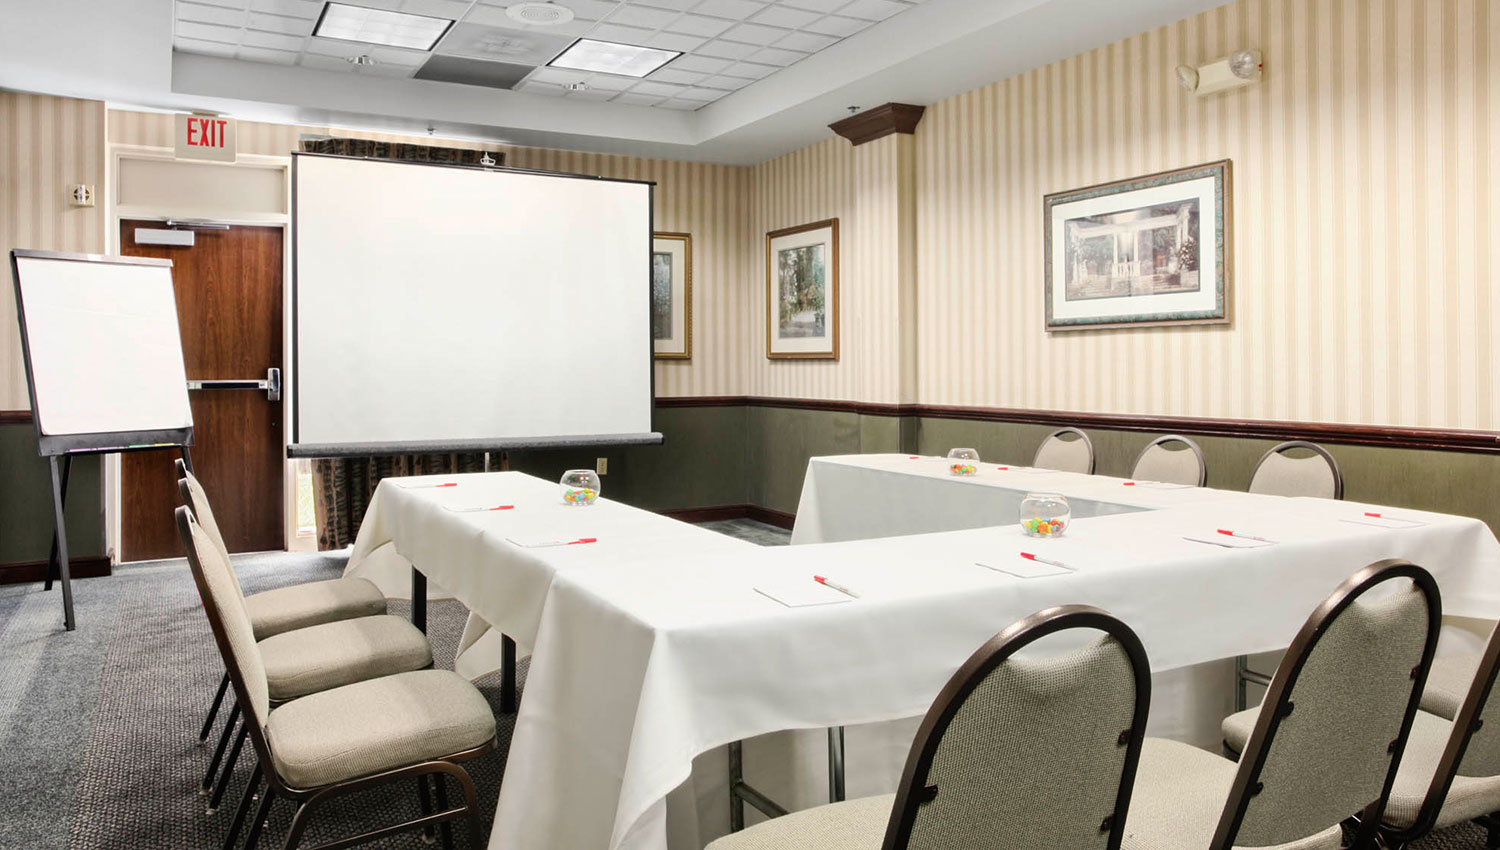 meeting rooms with white LCD projector and screen with a flip chart